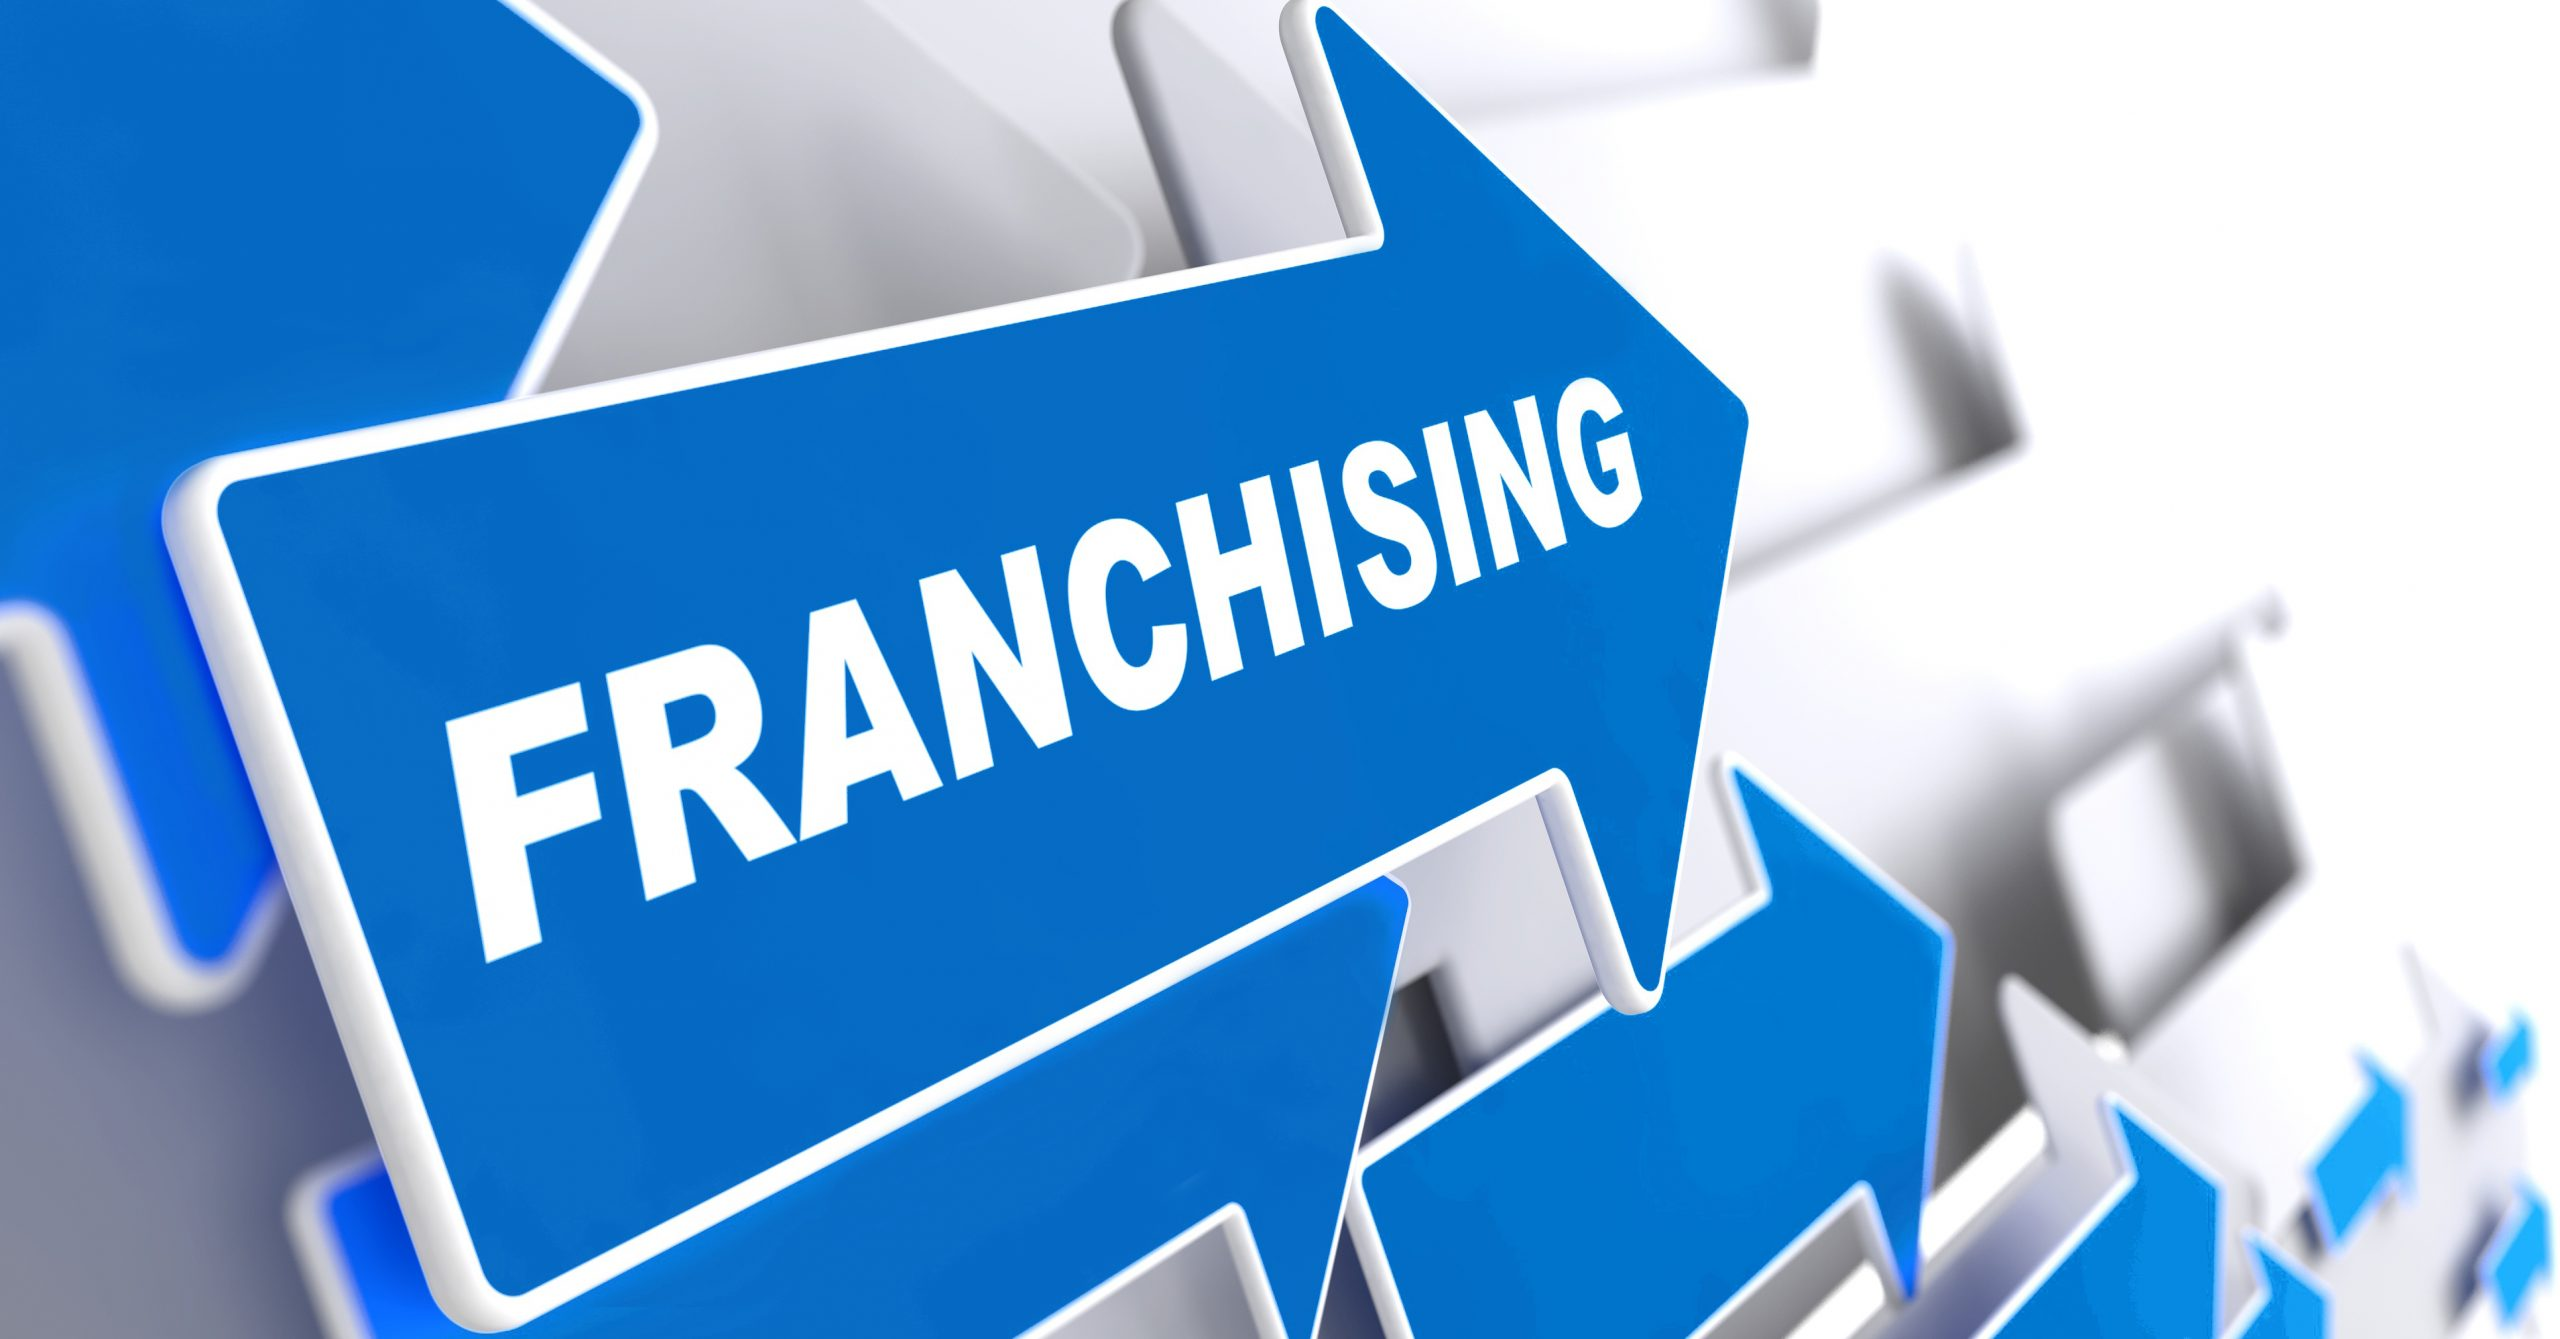 The Best Franchise Opportunities